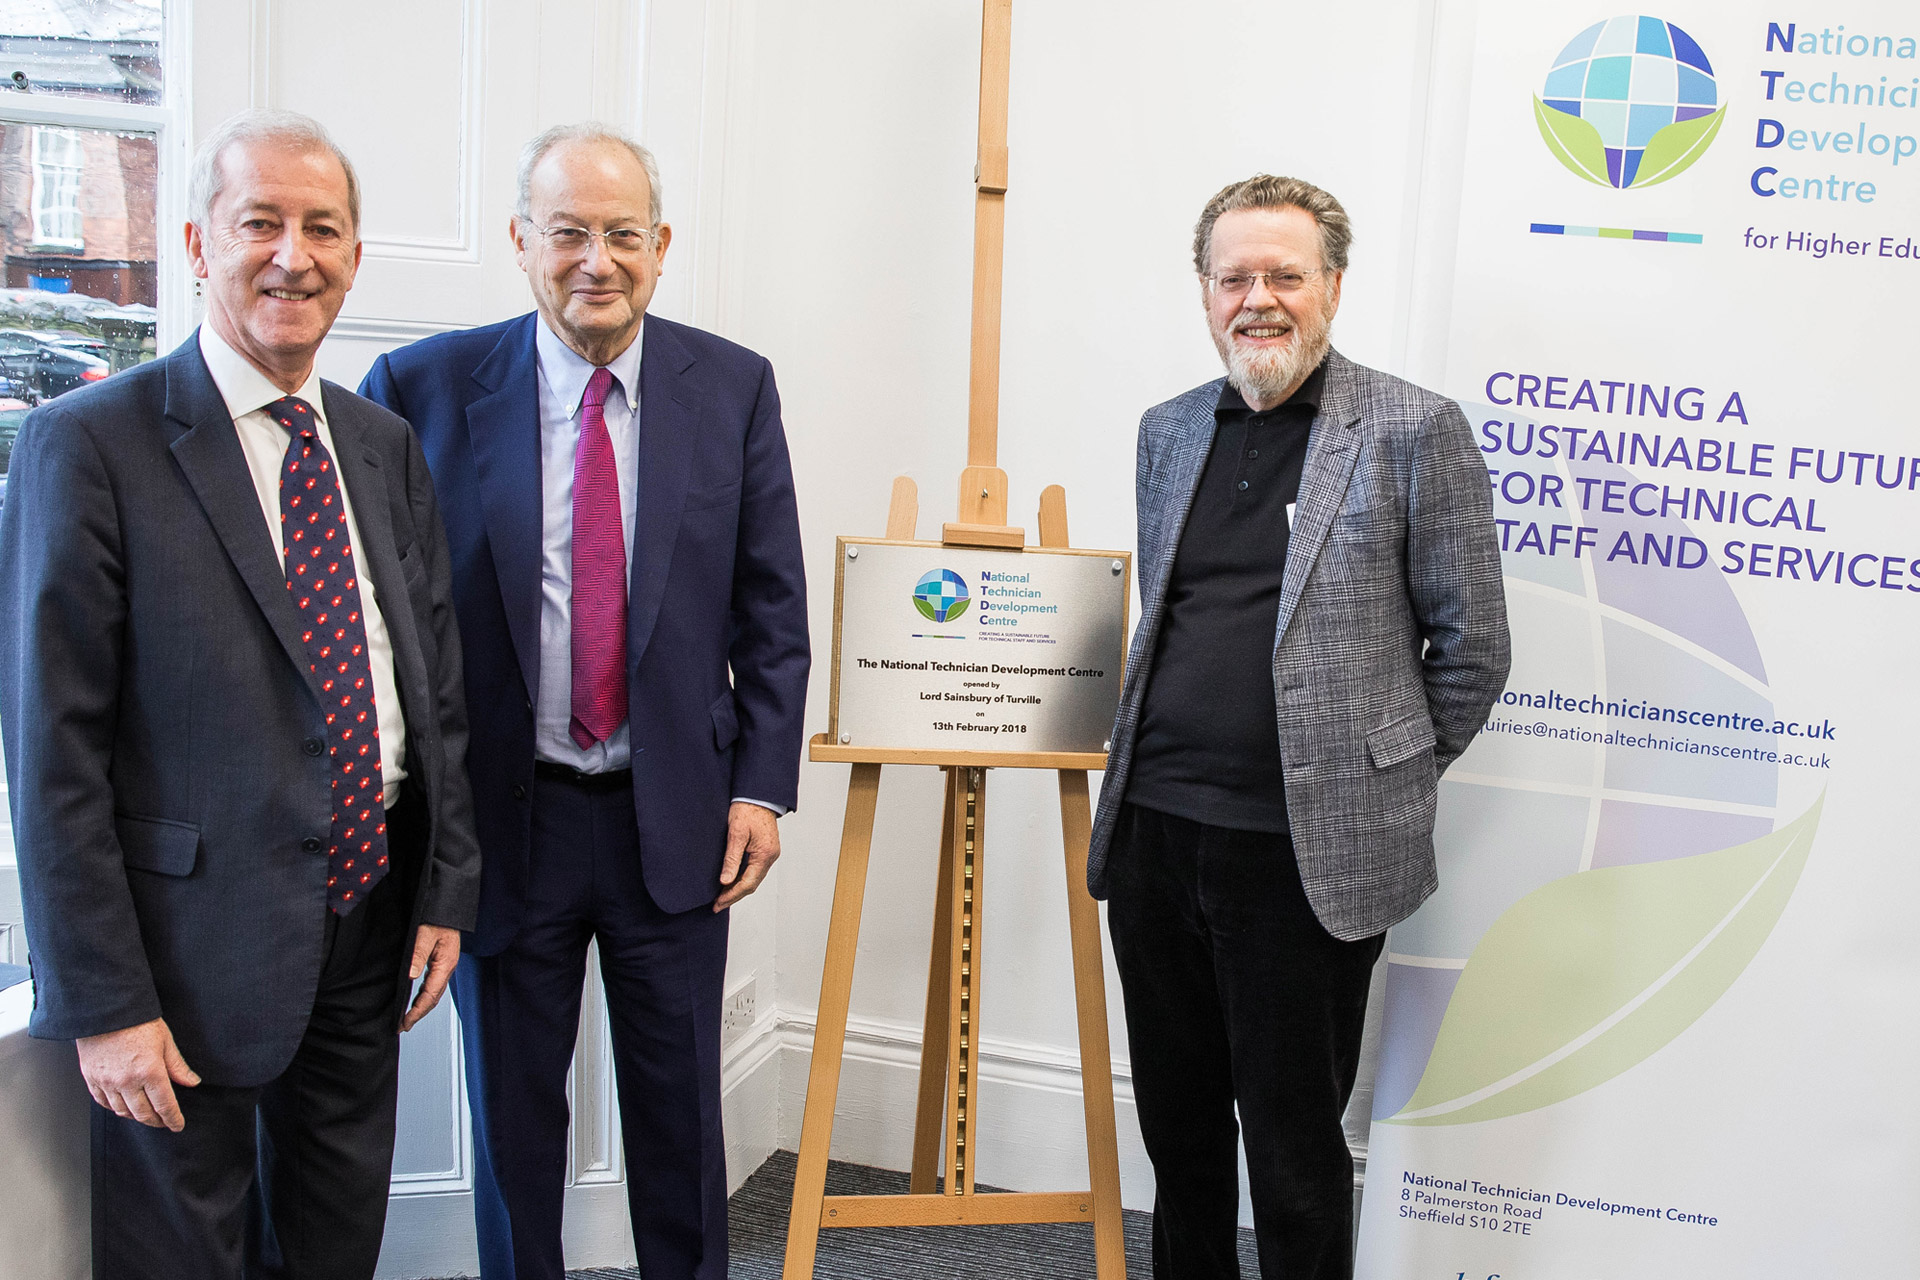 Terry Croft, Lord Sainsbury and Professor Sir Keith Burnett at NTDC opening